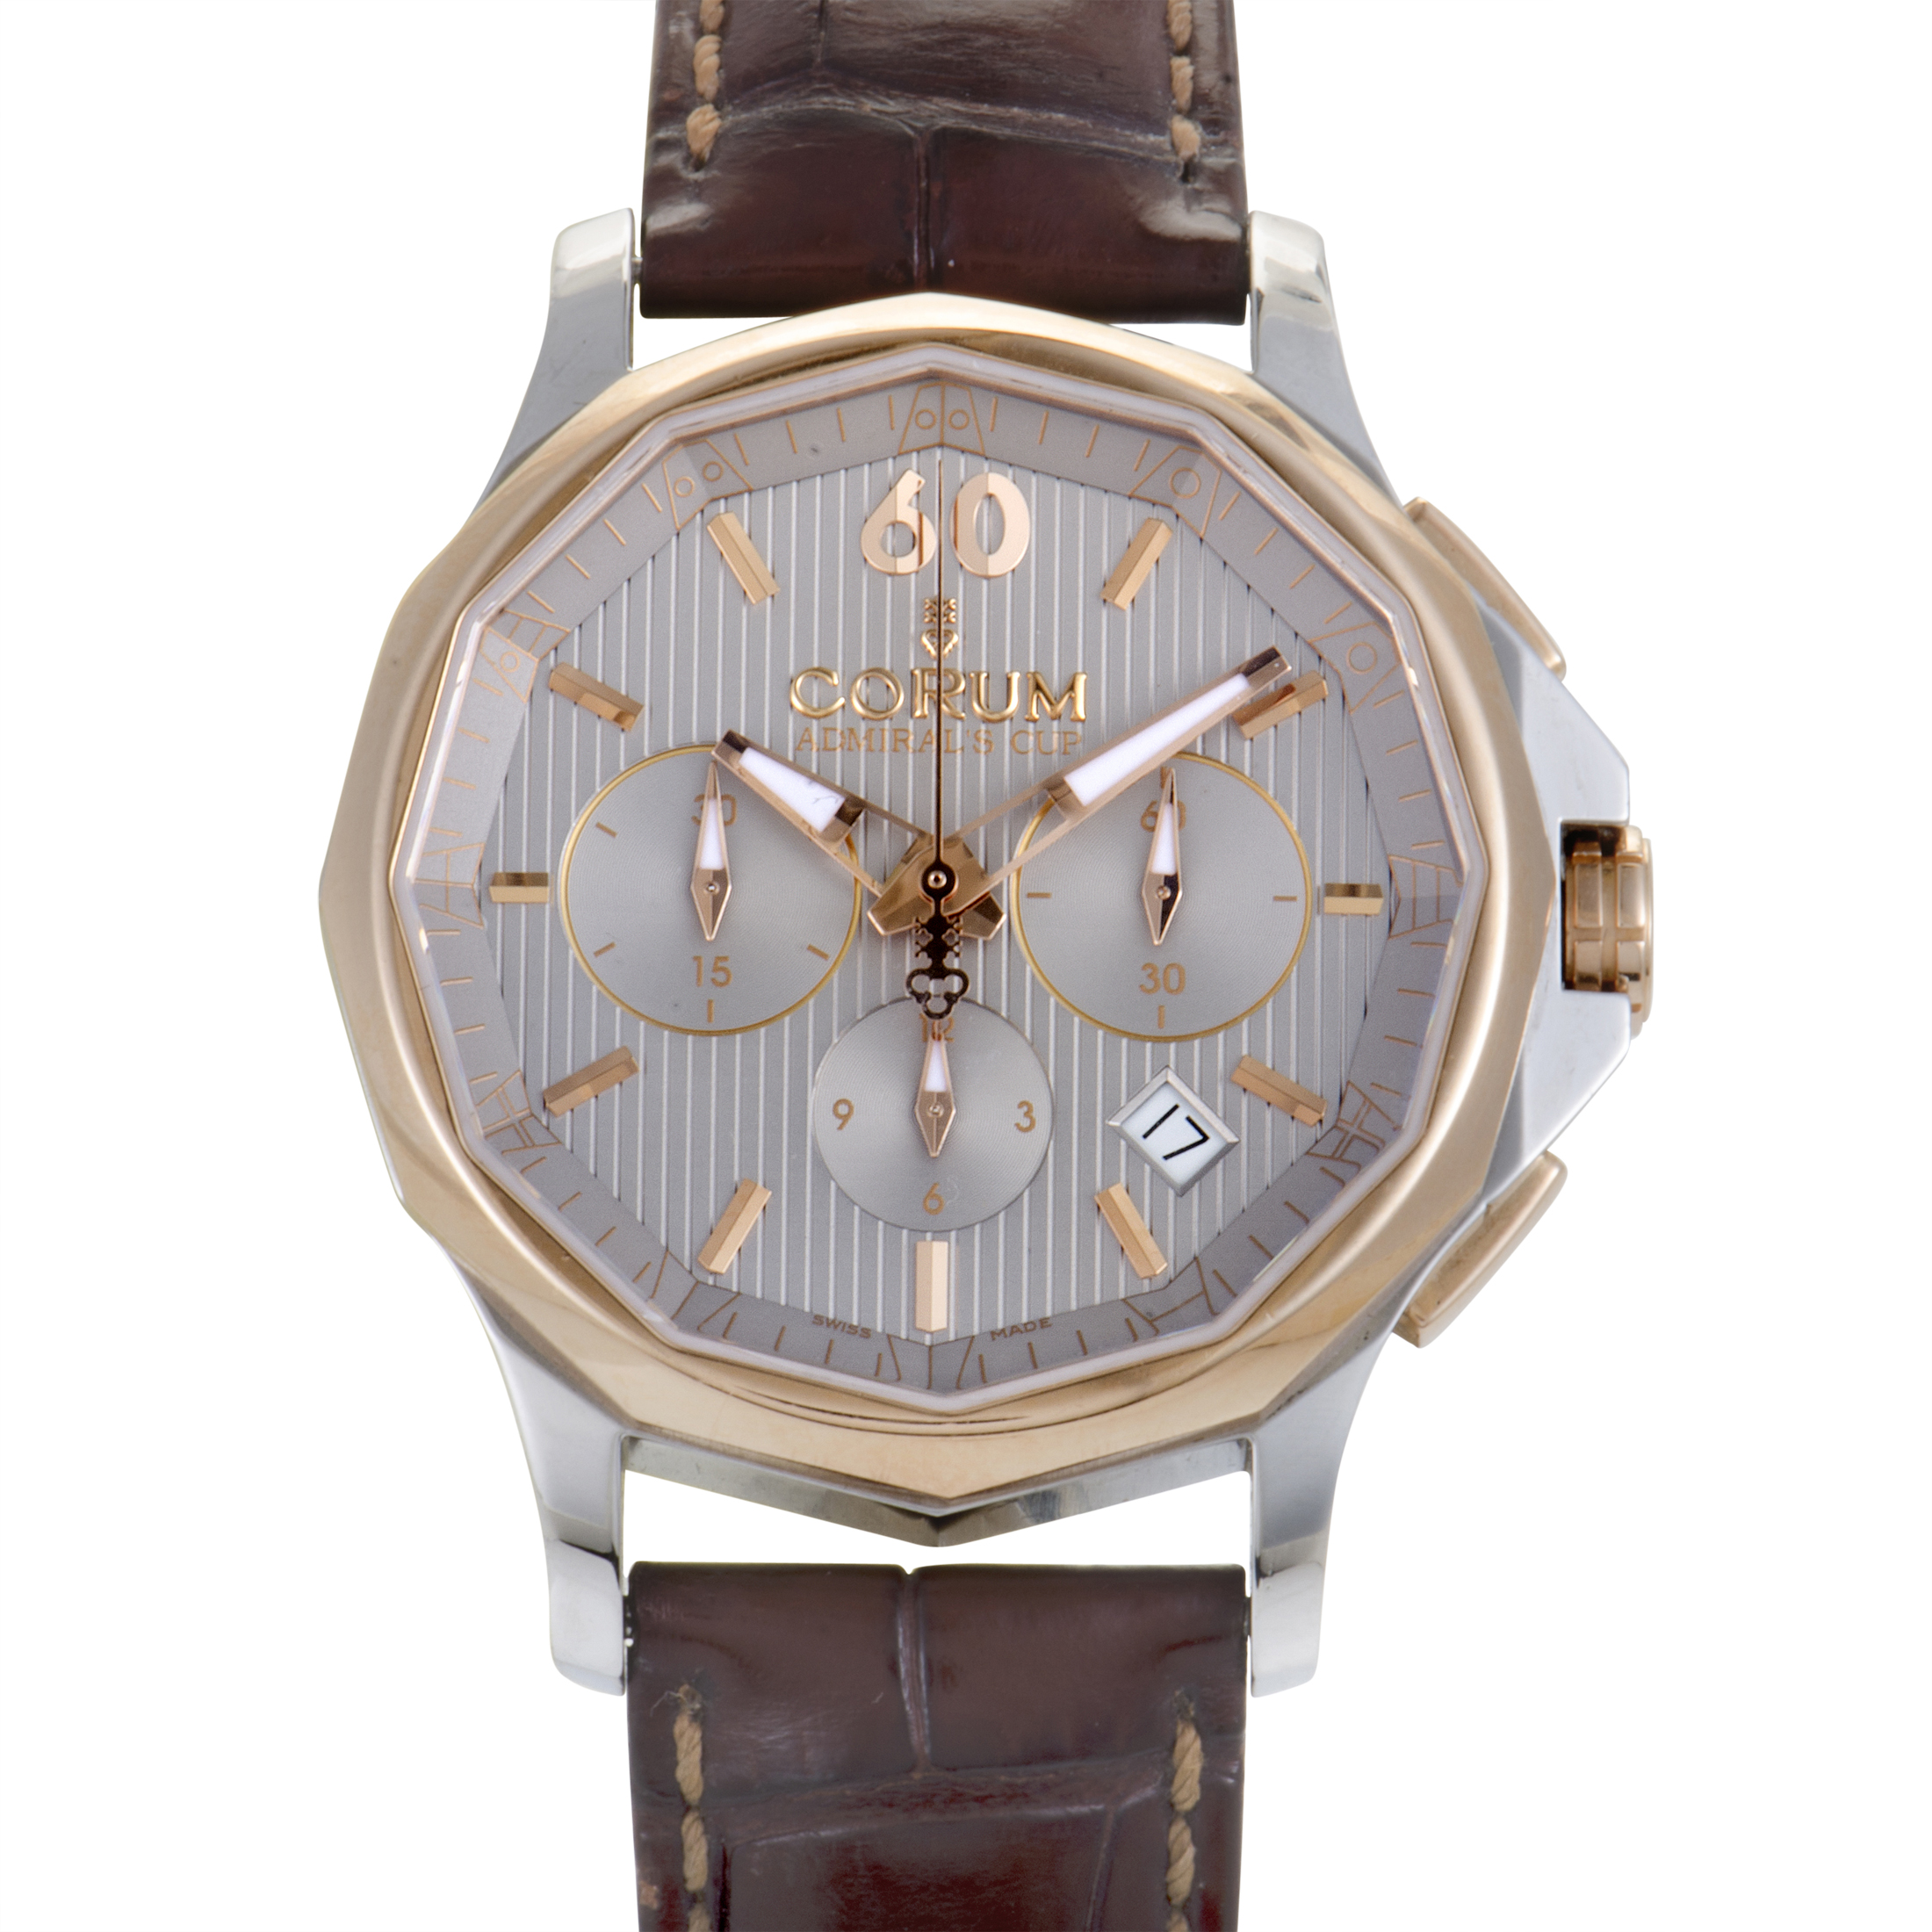 Admiral's Cup Legend 42 Chronograph 984.101.24/0F02 FH11